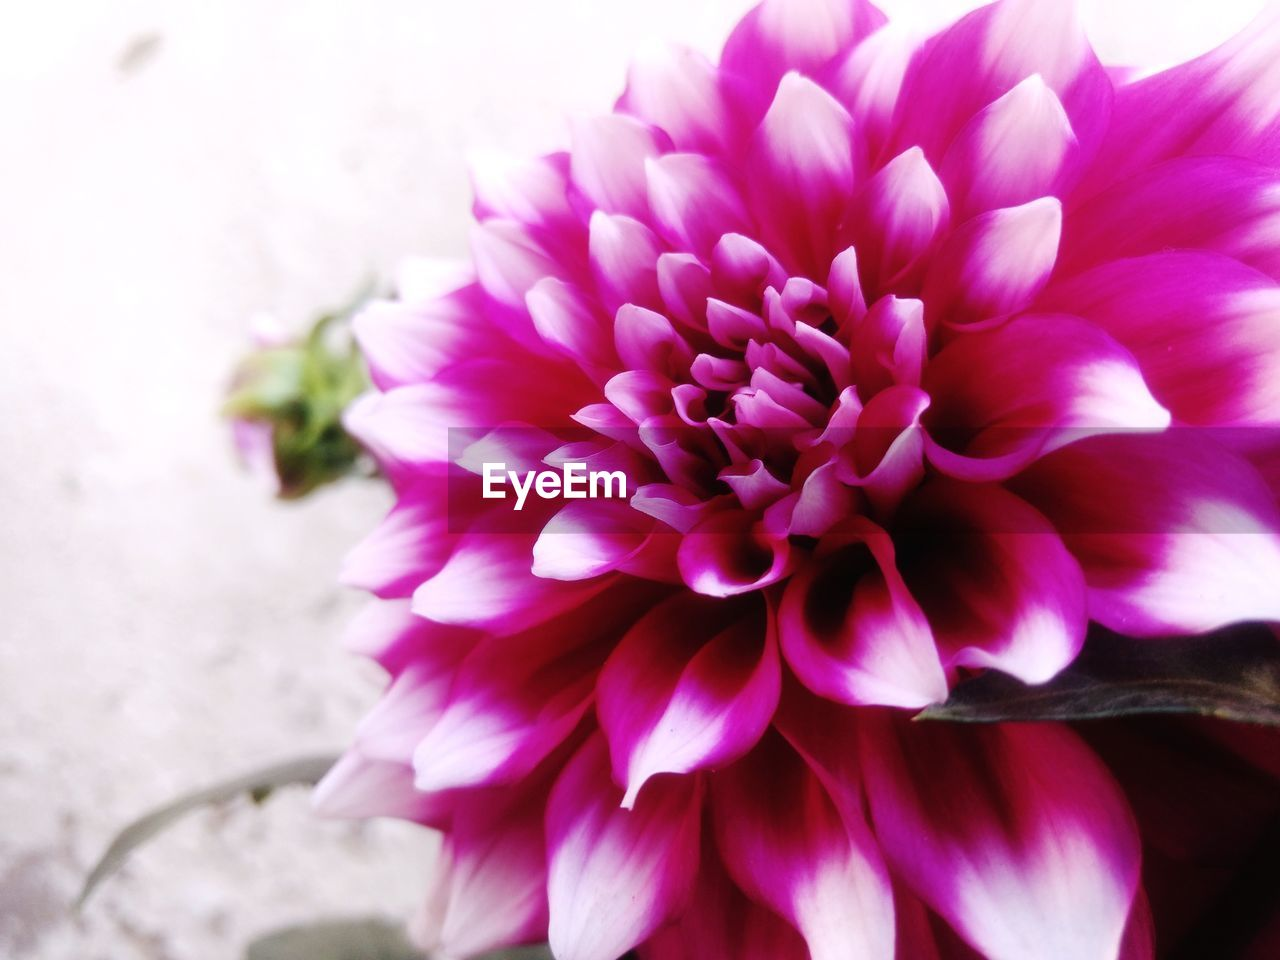 flower, petal, nature, beauty in nature, fragility, freshness, flower head, purple, no people, close-up, growth, pink color, plant, outdoors, day, blooming